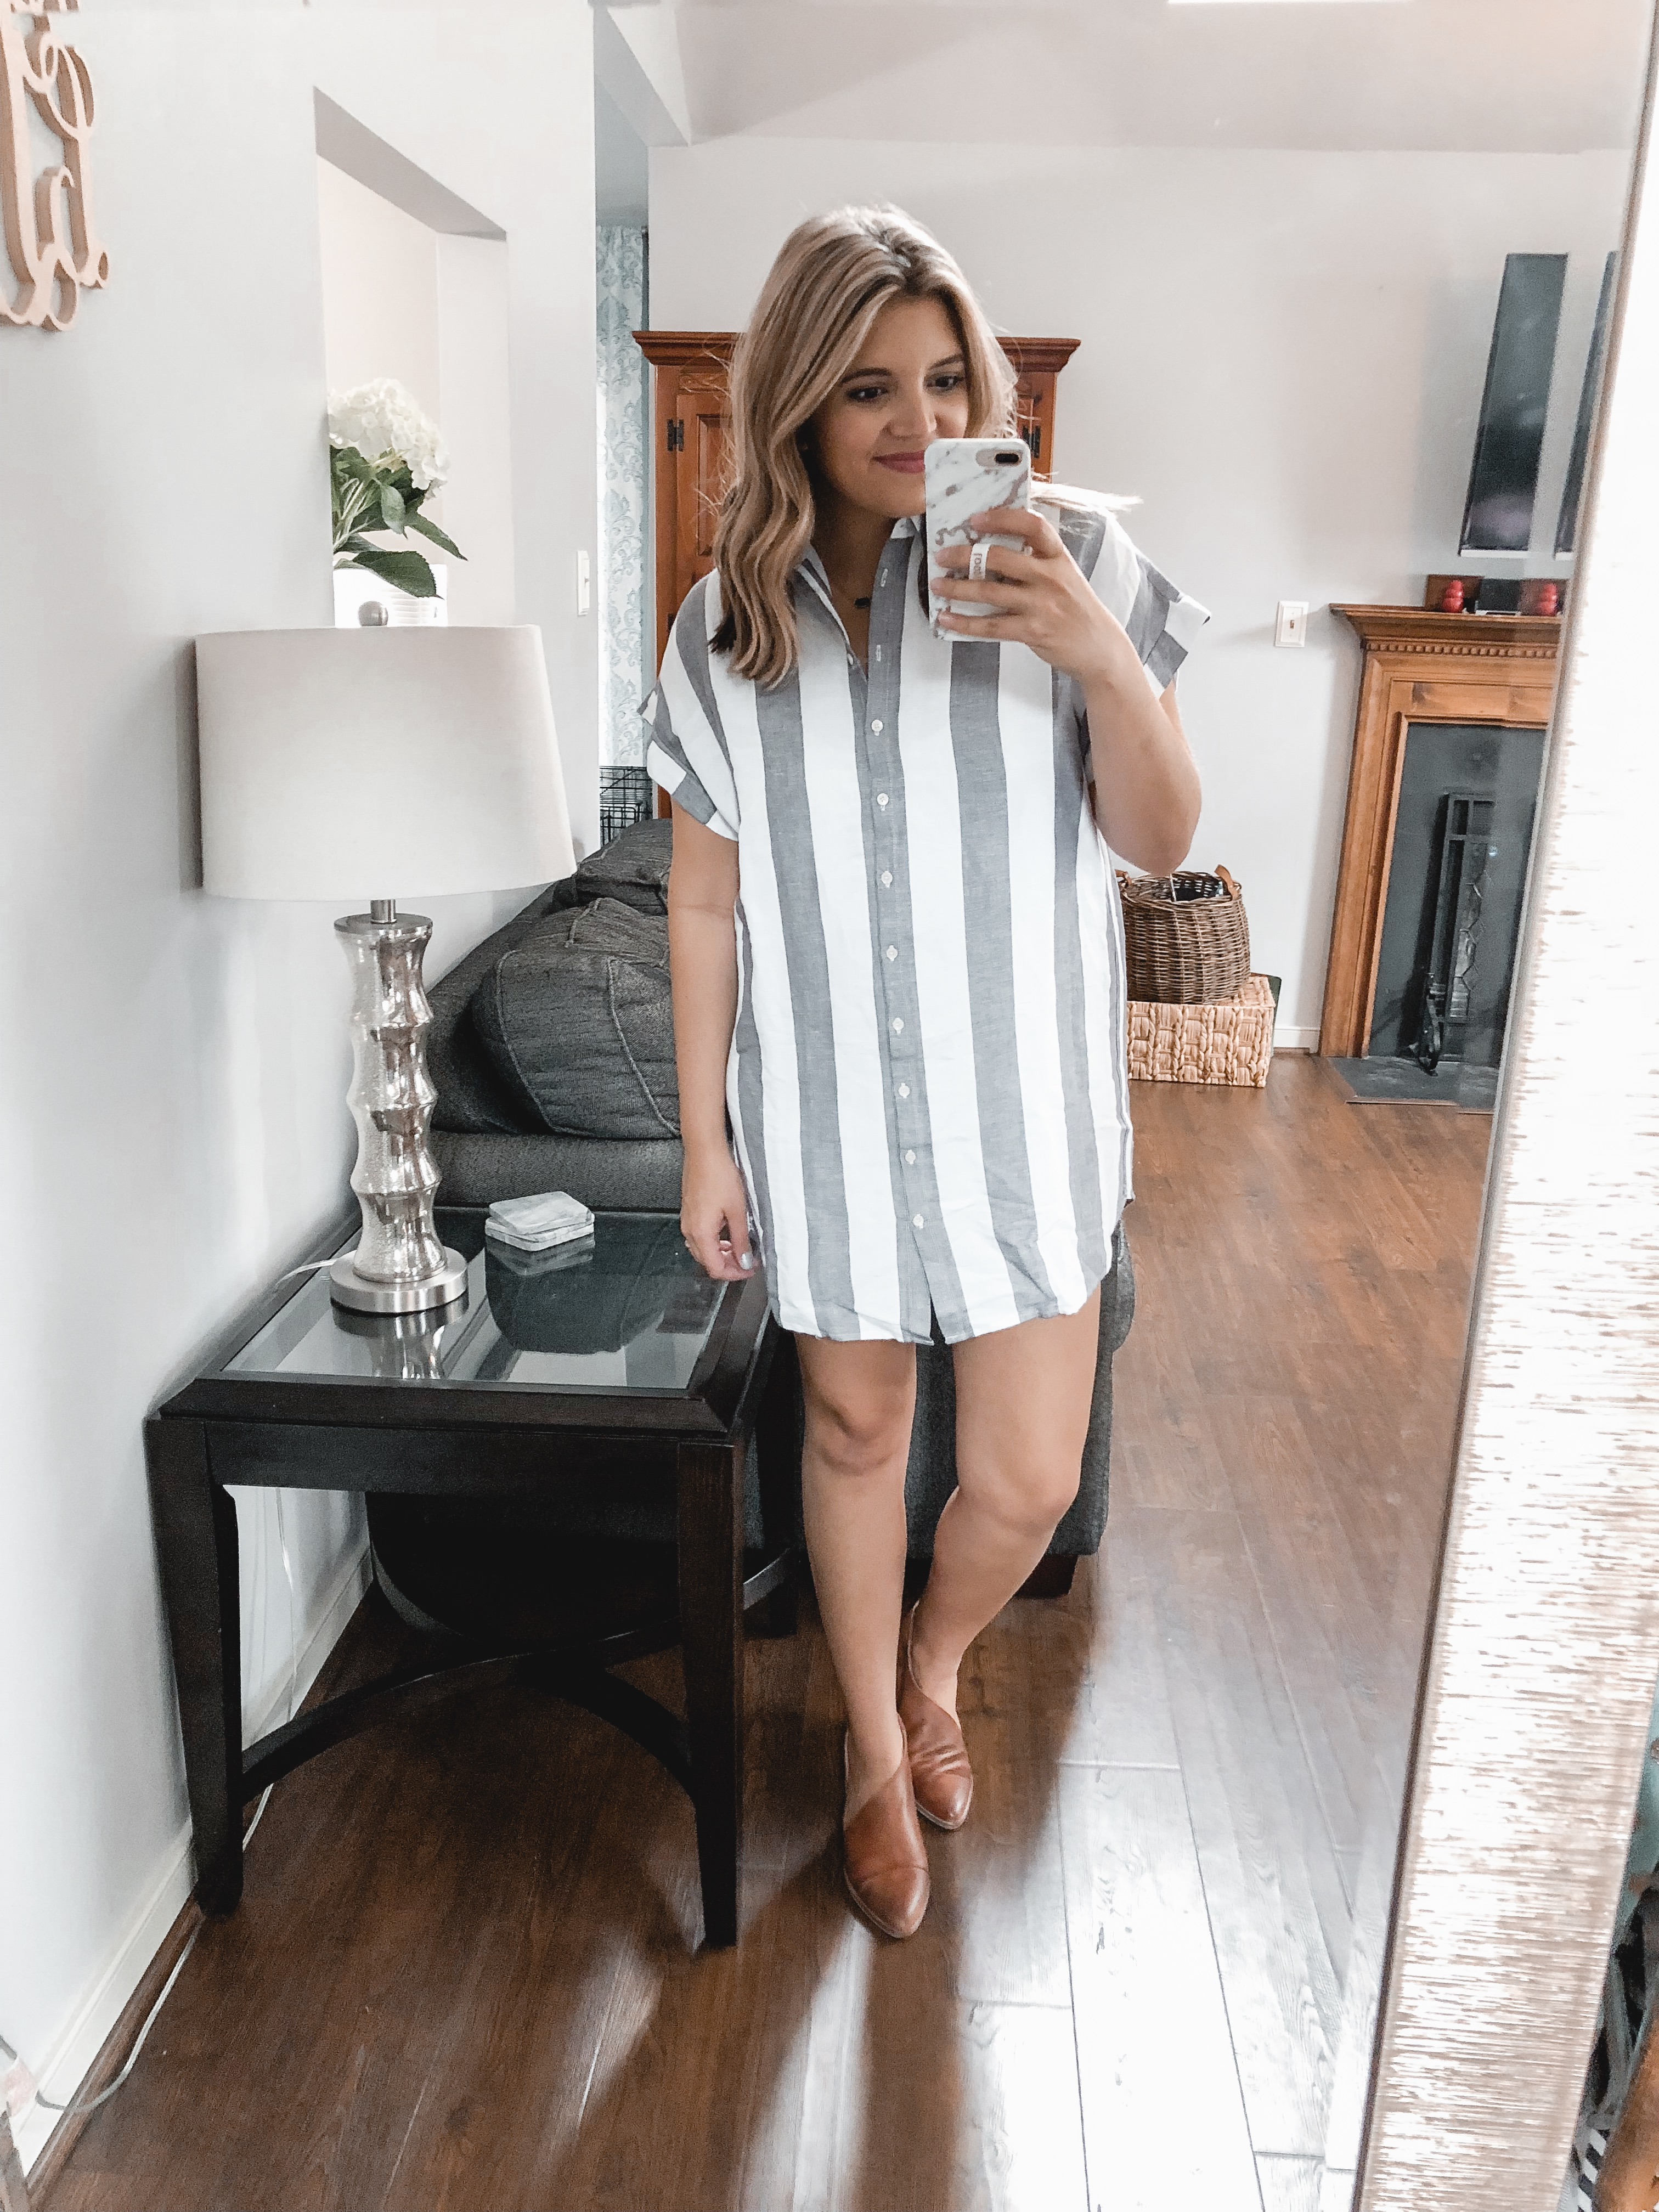 madewell shirtdress trunk club september review - nursing-friendly try-on session and reviews! bylaurenm.com